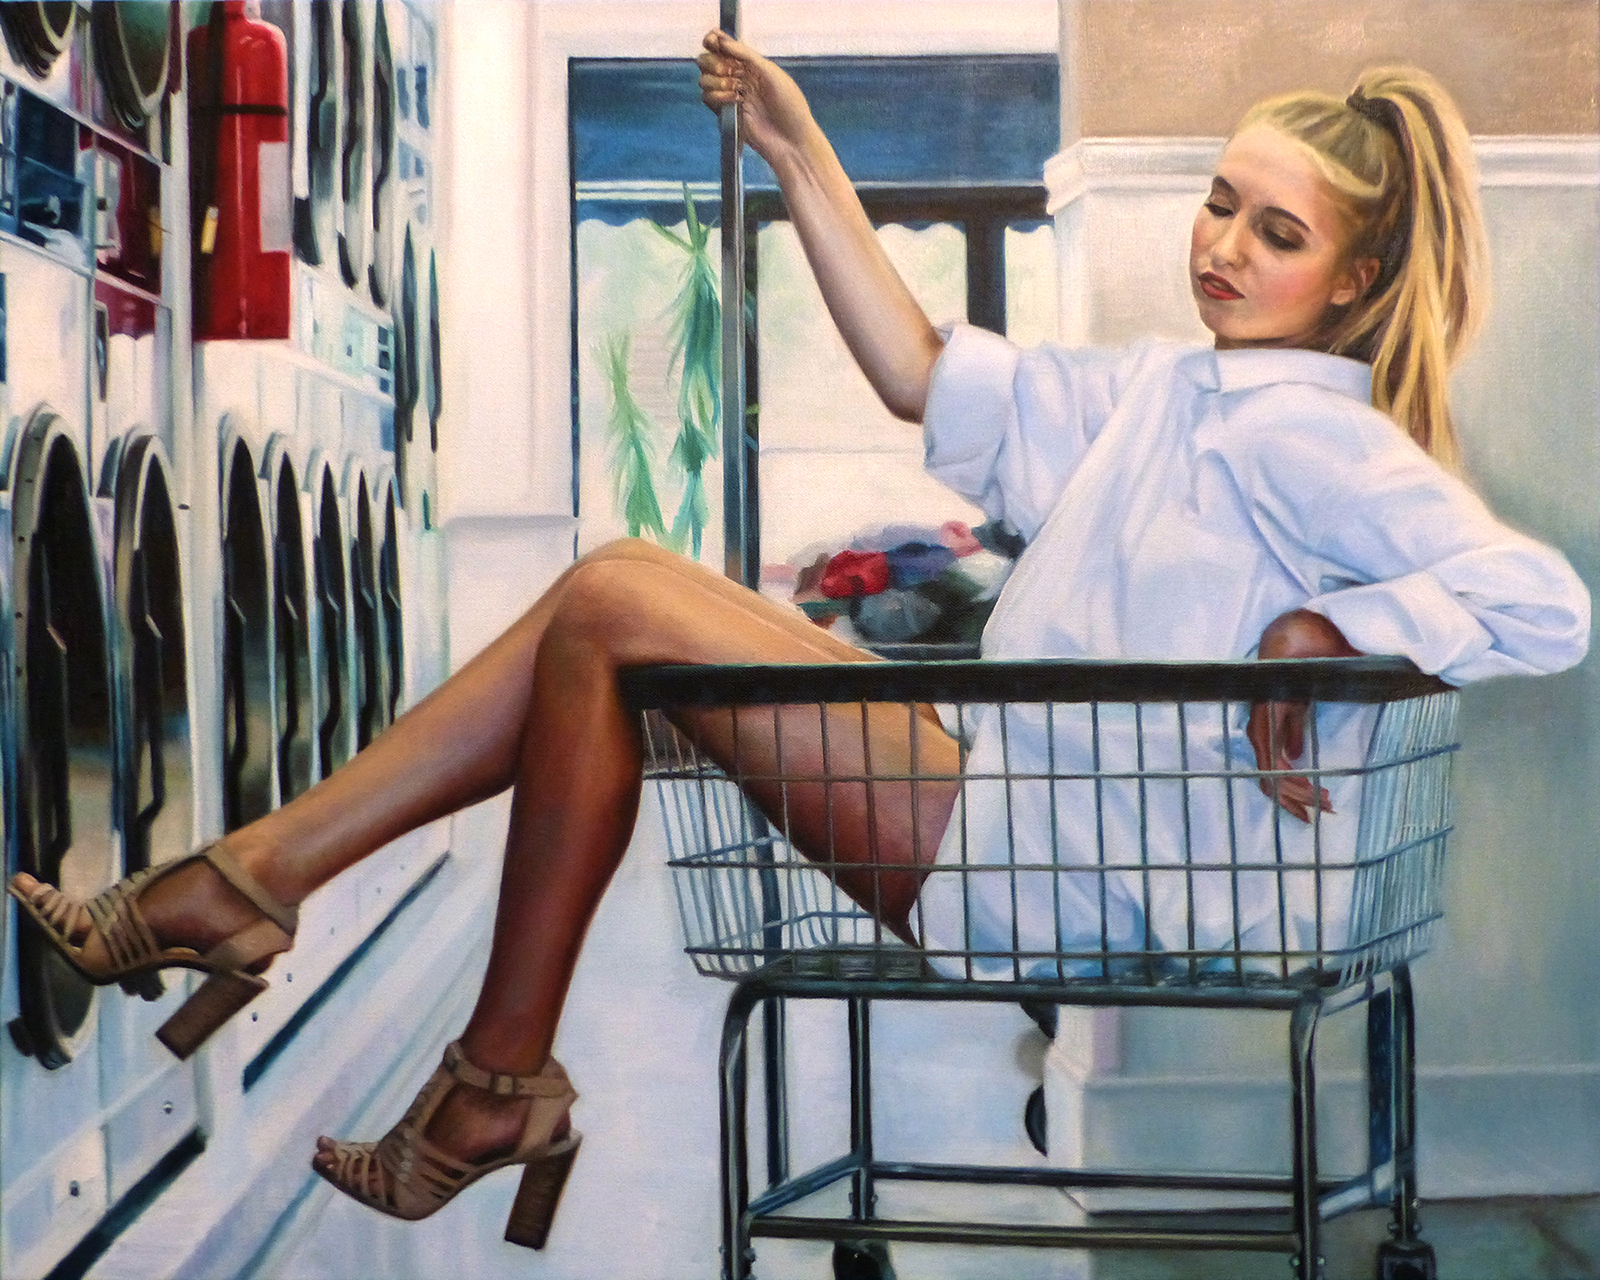 Laundry Day - Megan Burak